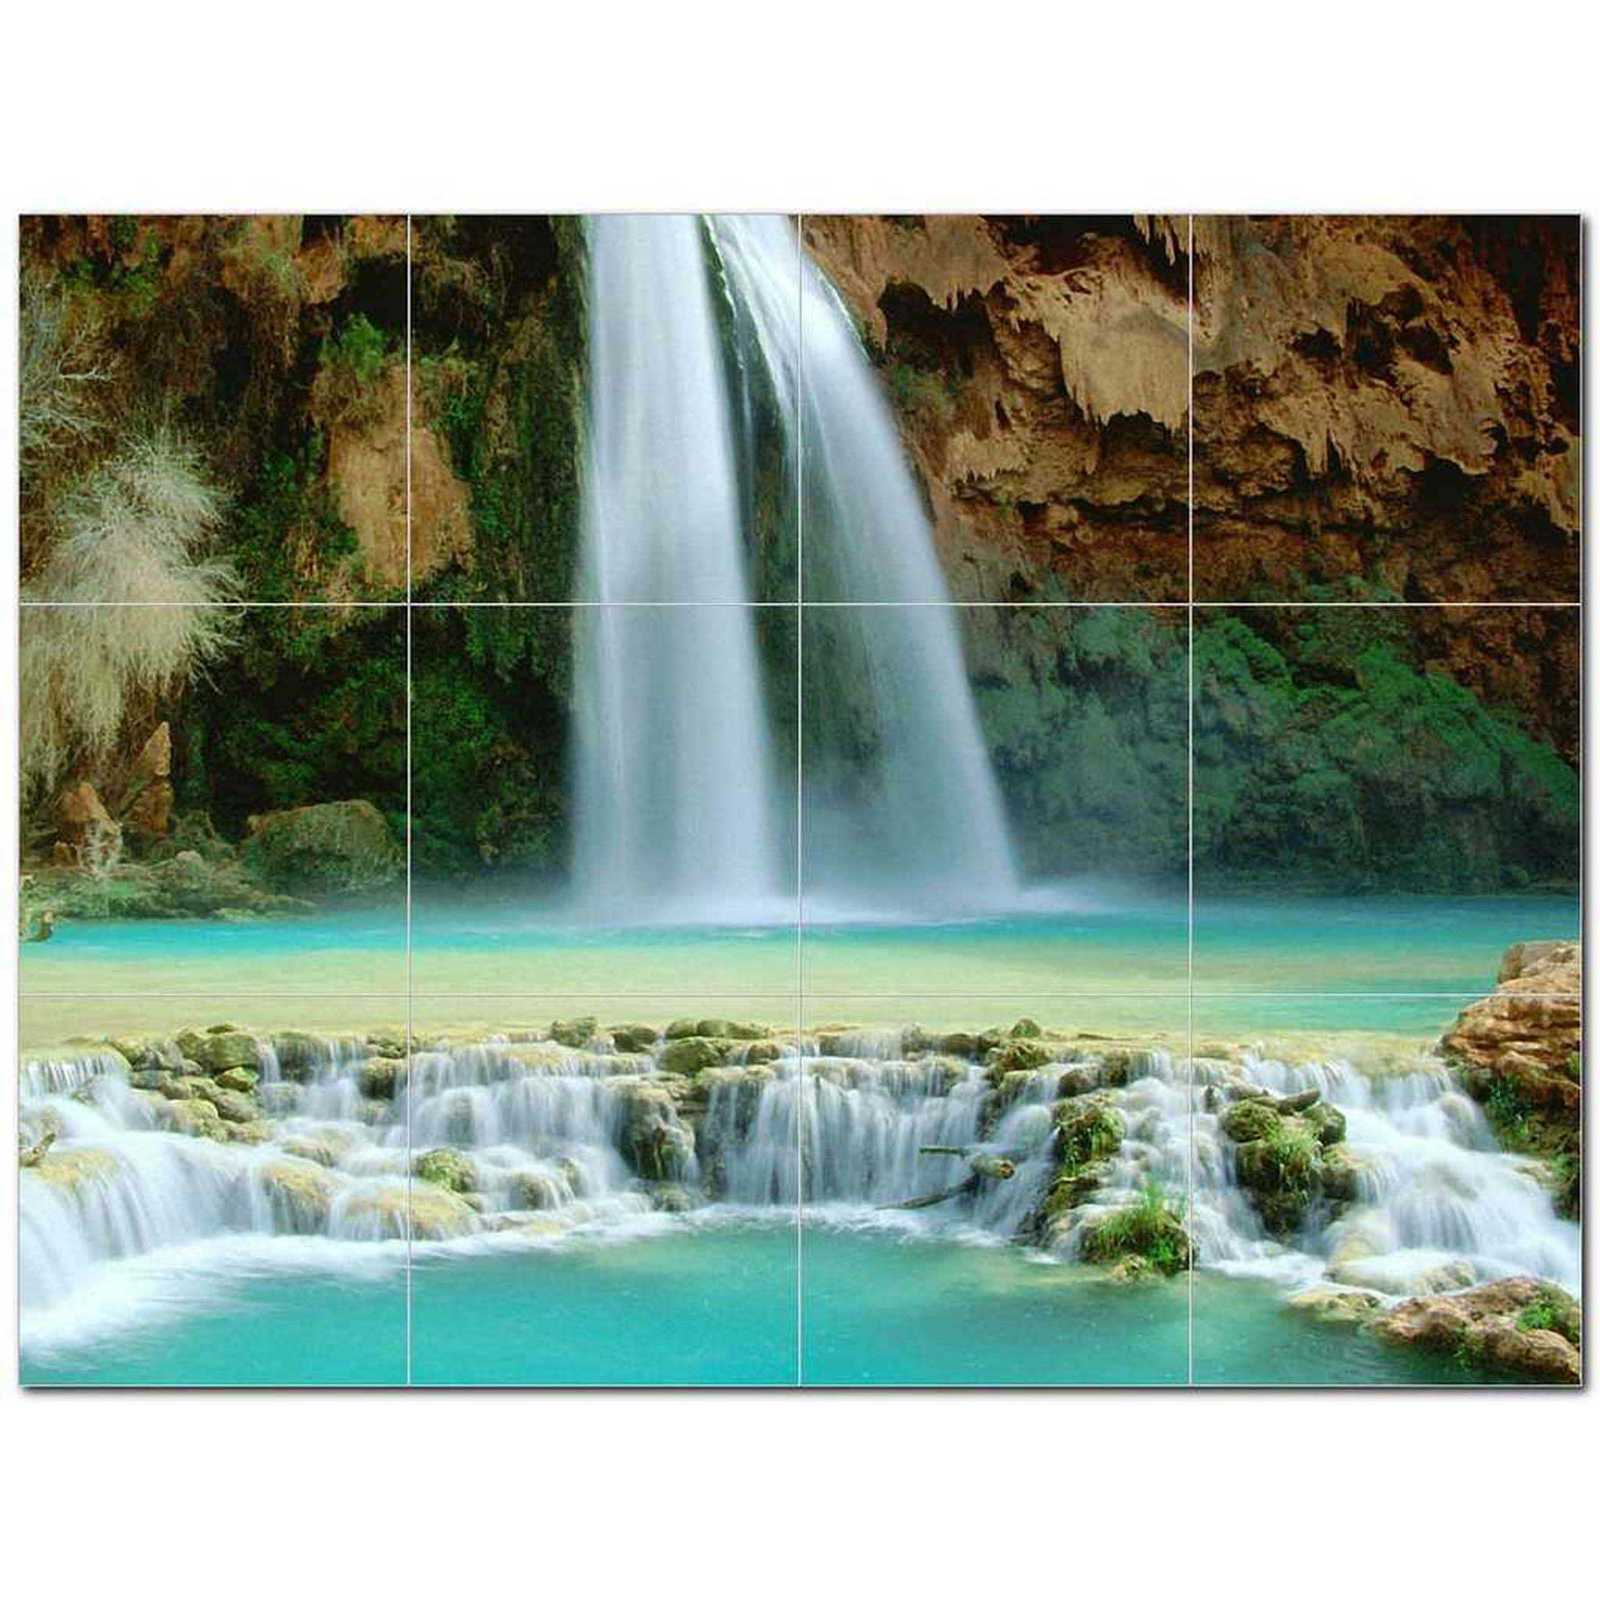 Primary image for Waterfalls Photo Ceramic Tile Mural Kitchen Backsplash Bathroom Shower BAZ406227